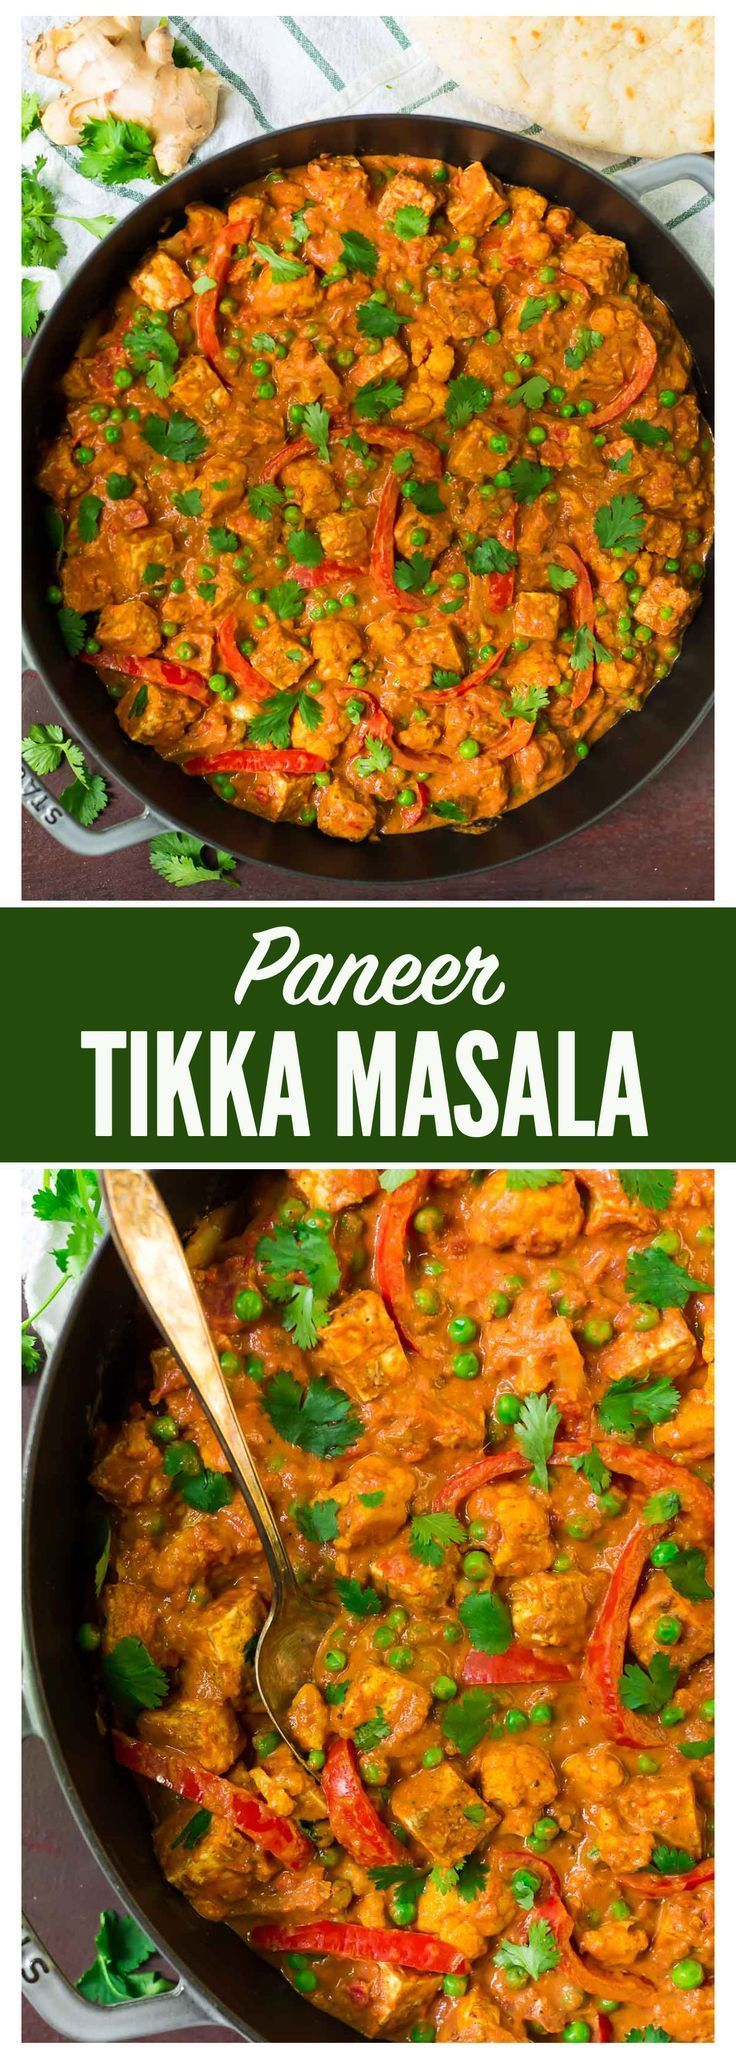 An easy, healthy recipe for the popular Indian restaurant dish Paneer Tikka Masala (spiced Indian cottage cheese with masala gravy).  A rich, filling vegetarian dish that anyone can make at home! Recipe at wellplated.com | @wellplated